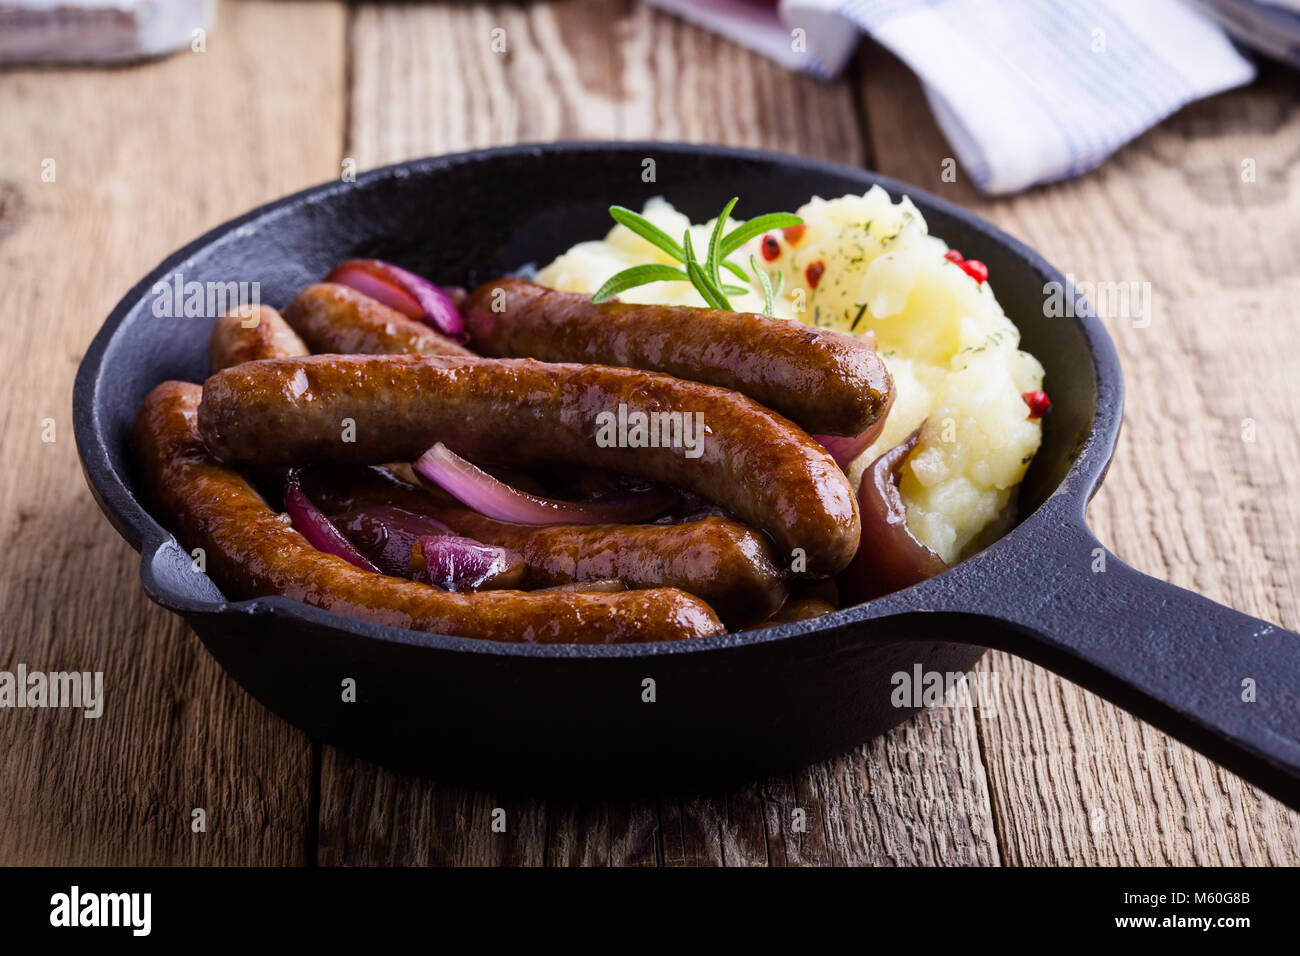 Sausage and onion casserole served with potato mash in cast iron skillet on rustic wooden table Stock Photo